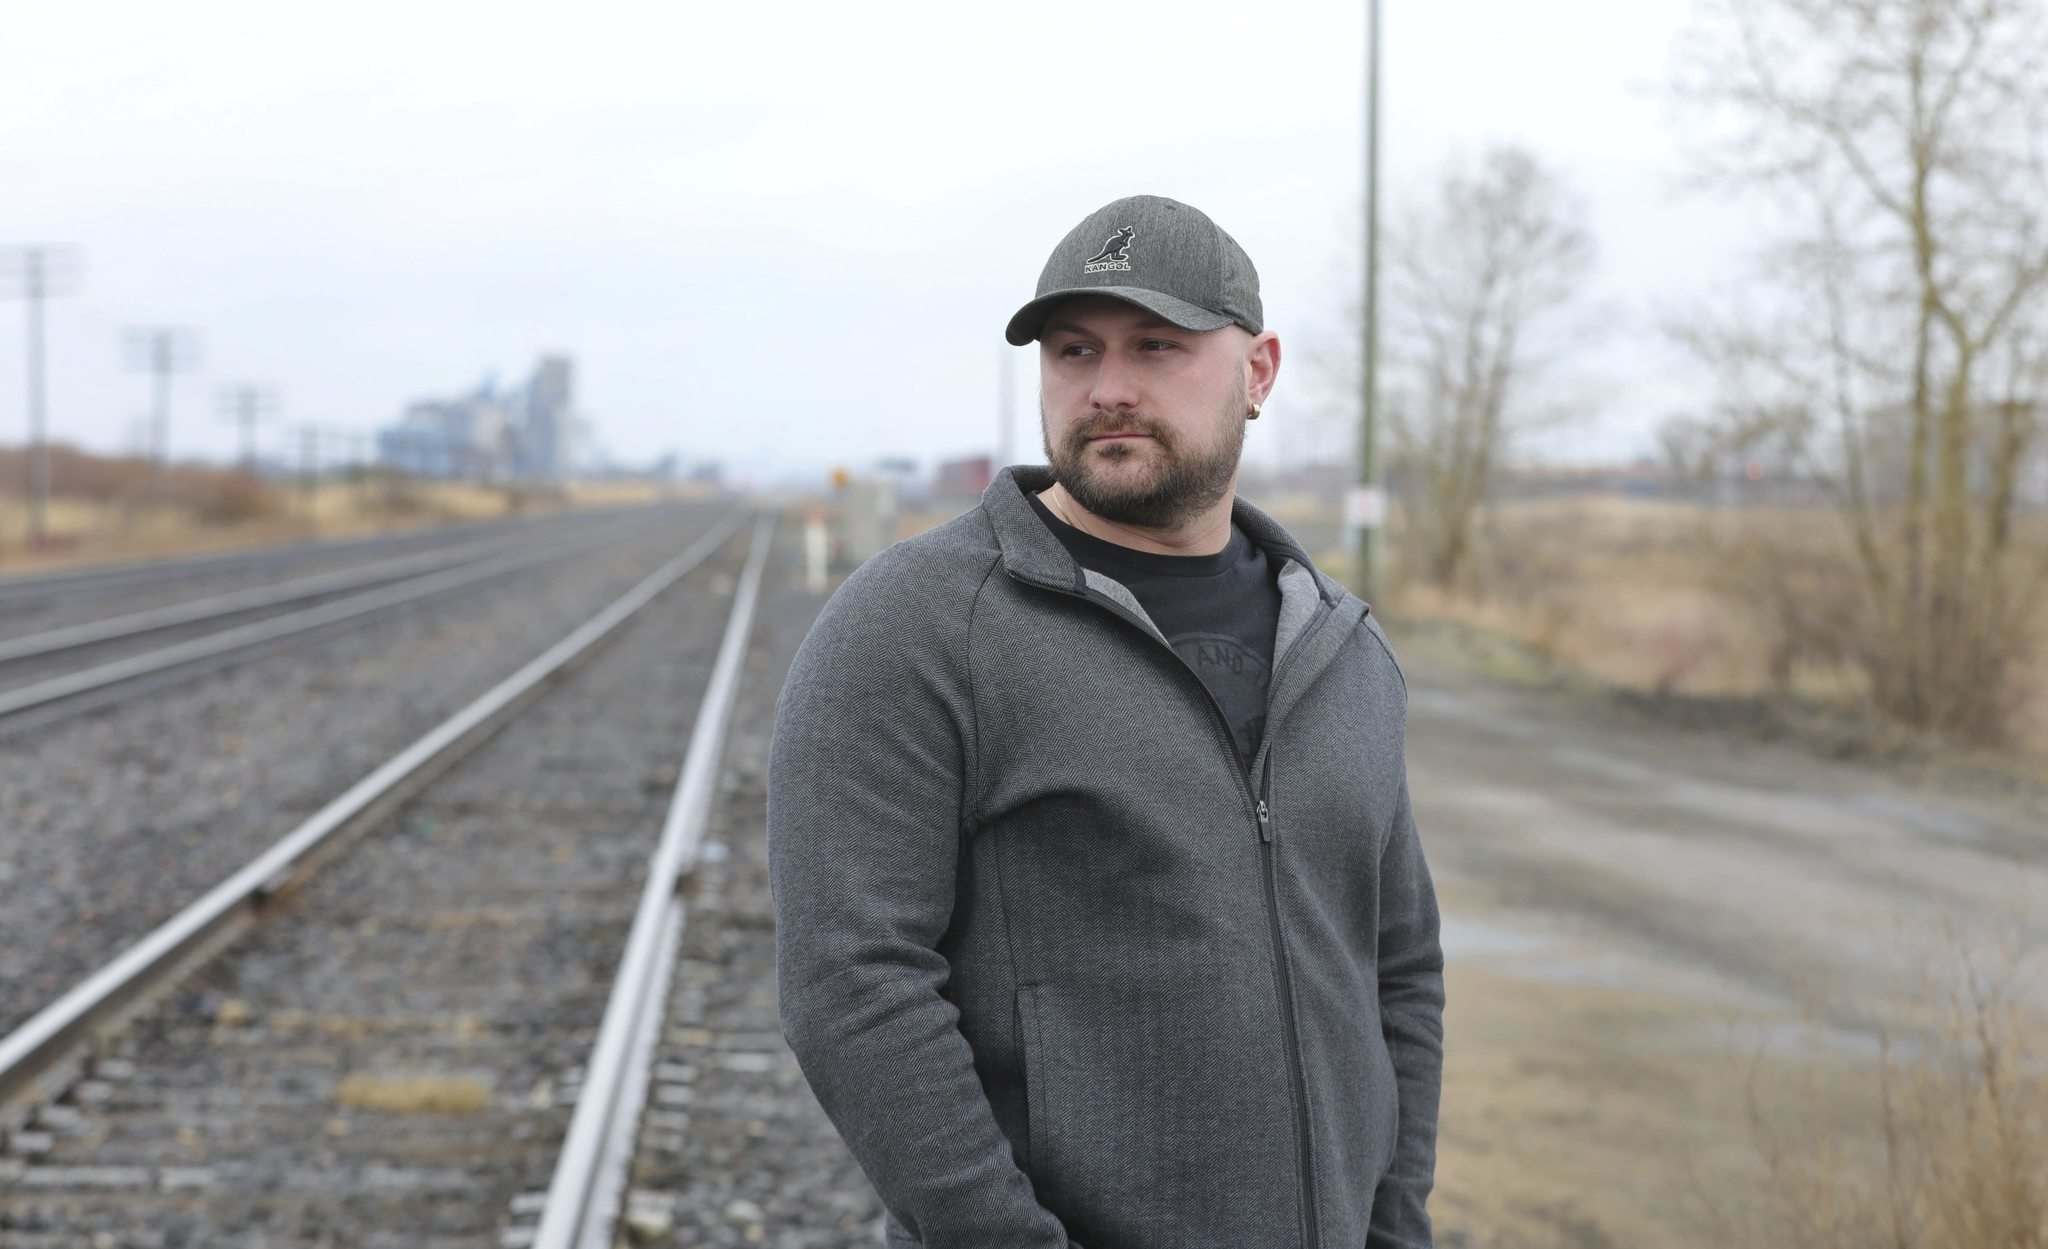 Denten Dandeneau said he's called Service Canada at least every second day, and often waits hours to speak with someone who doesn't have an answer, or his call gets dropped.</p>